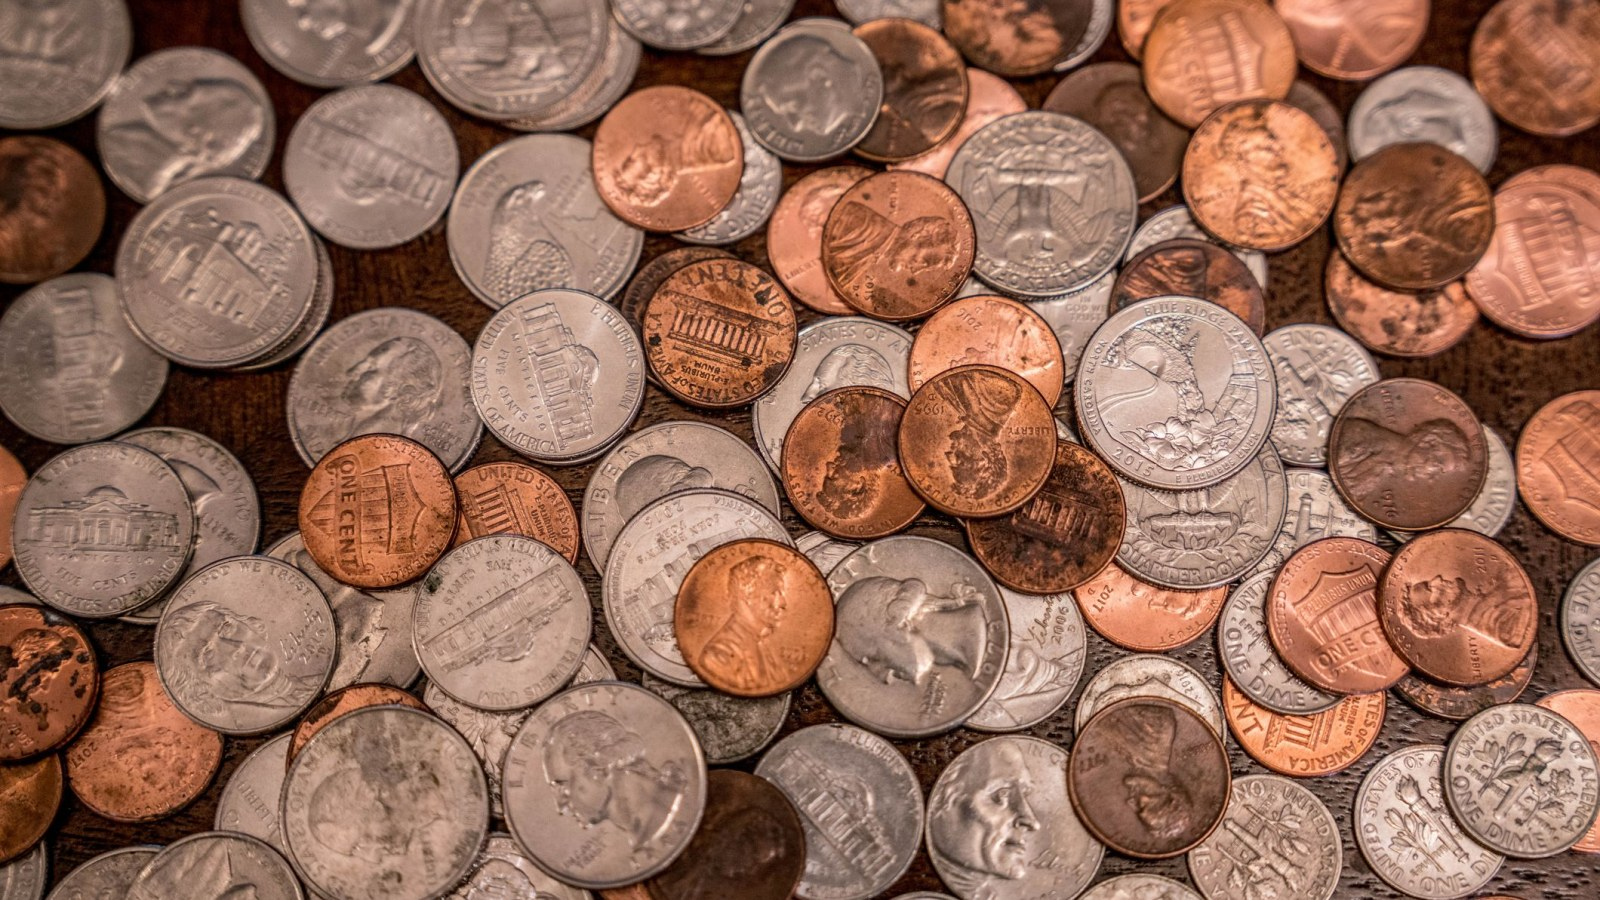 Extremely Rare Coin Discovered in a High Schooler's Lunch